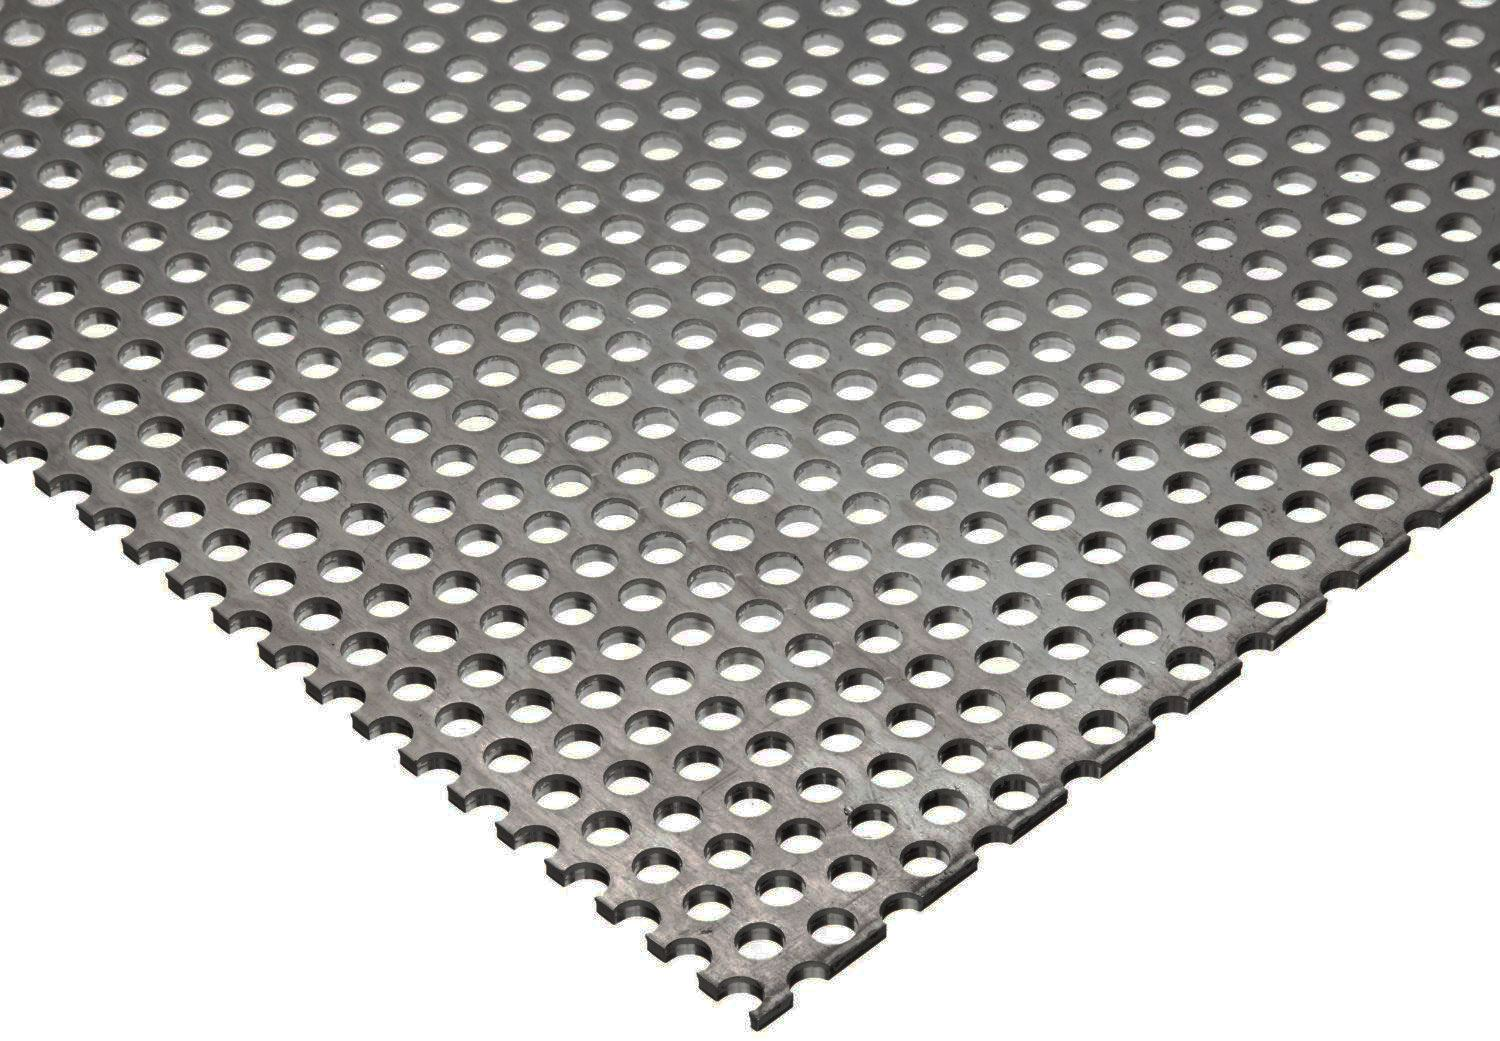 304 Stainless Steel Perforated Sheet 035 Quot 20 Ga X 12